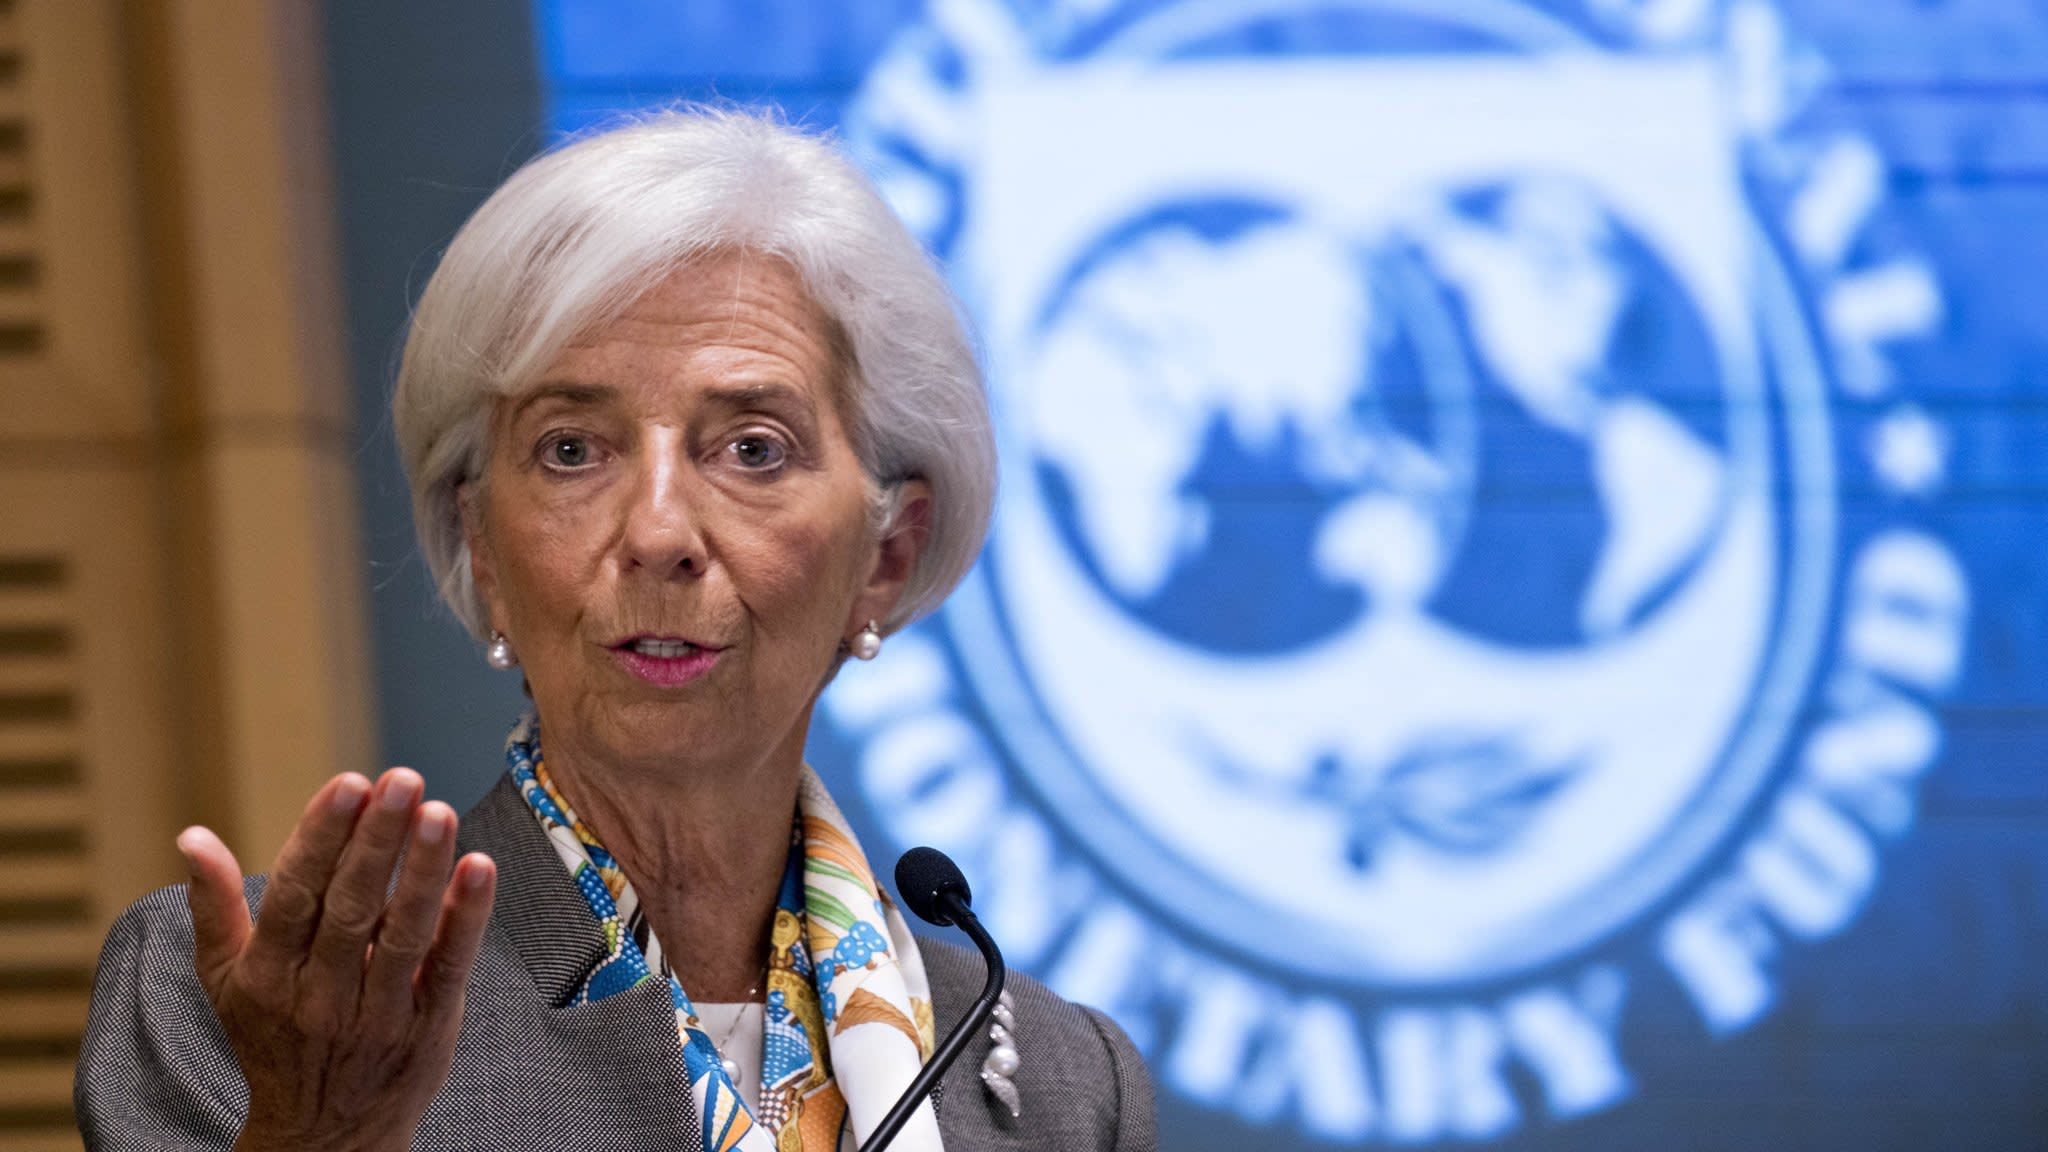 Lagarde defends Fed interest rate rises after Trump attack